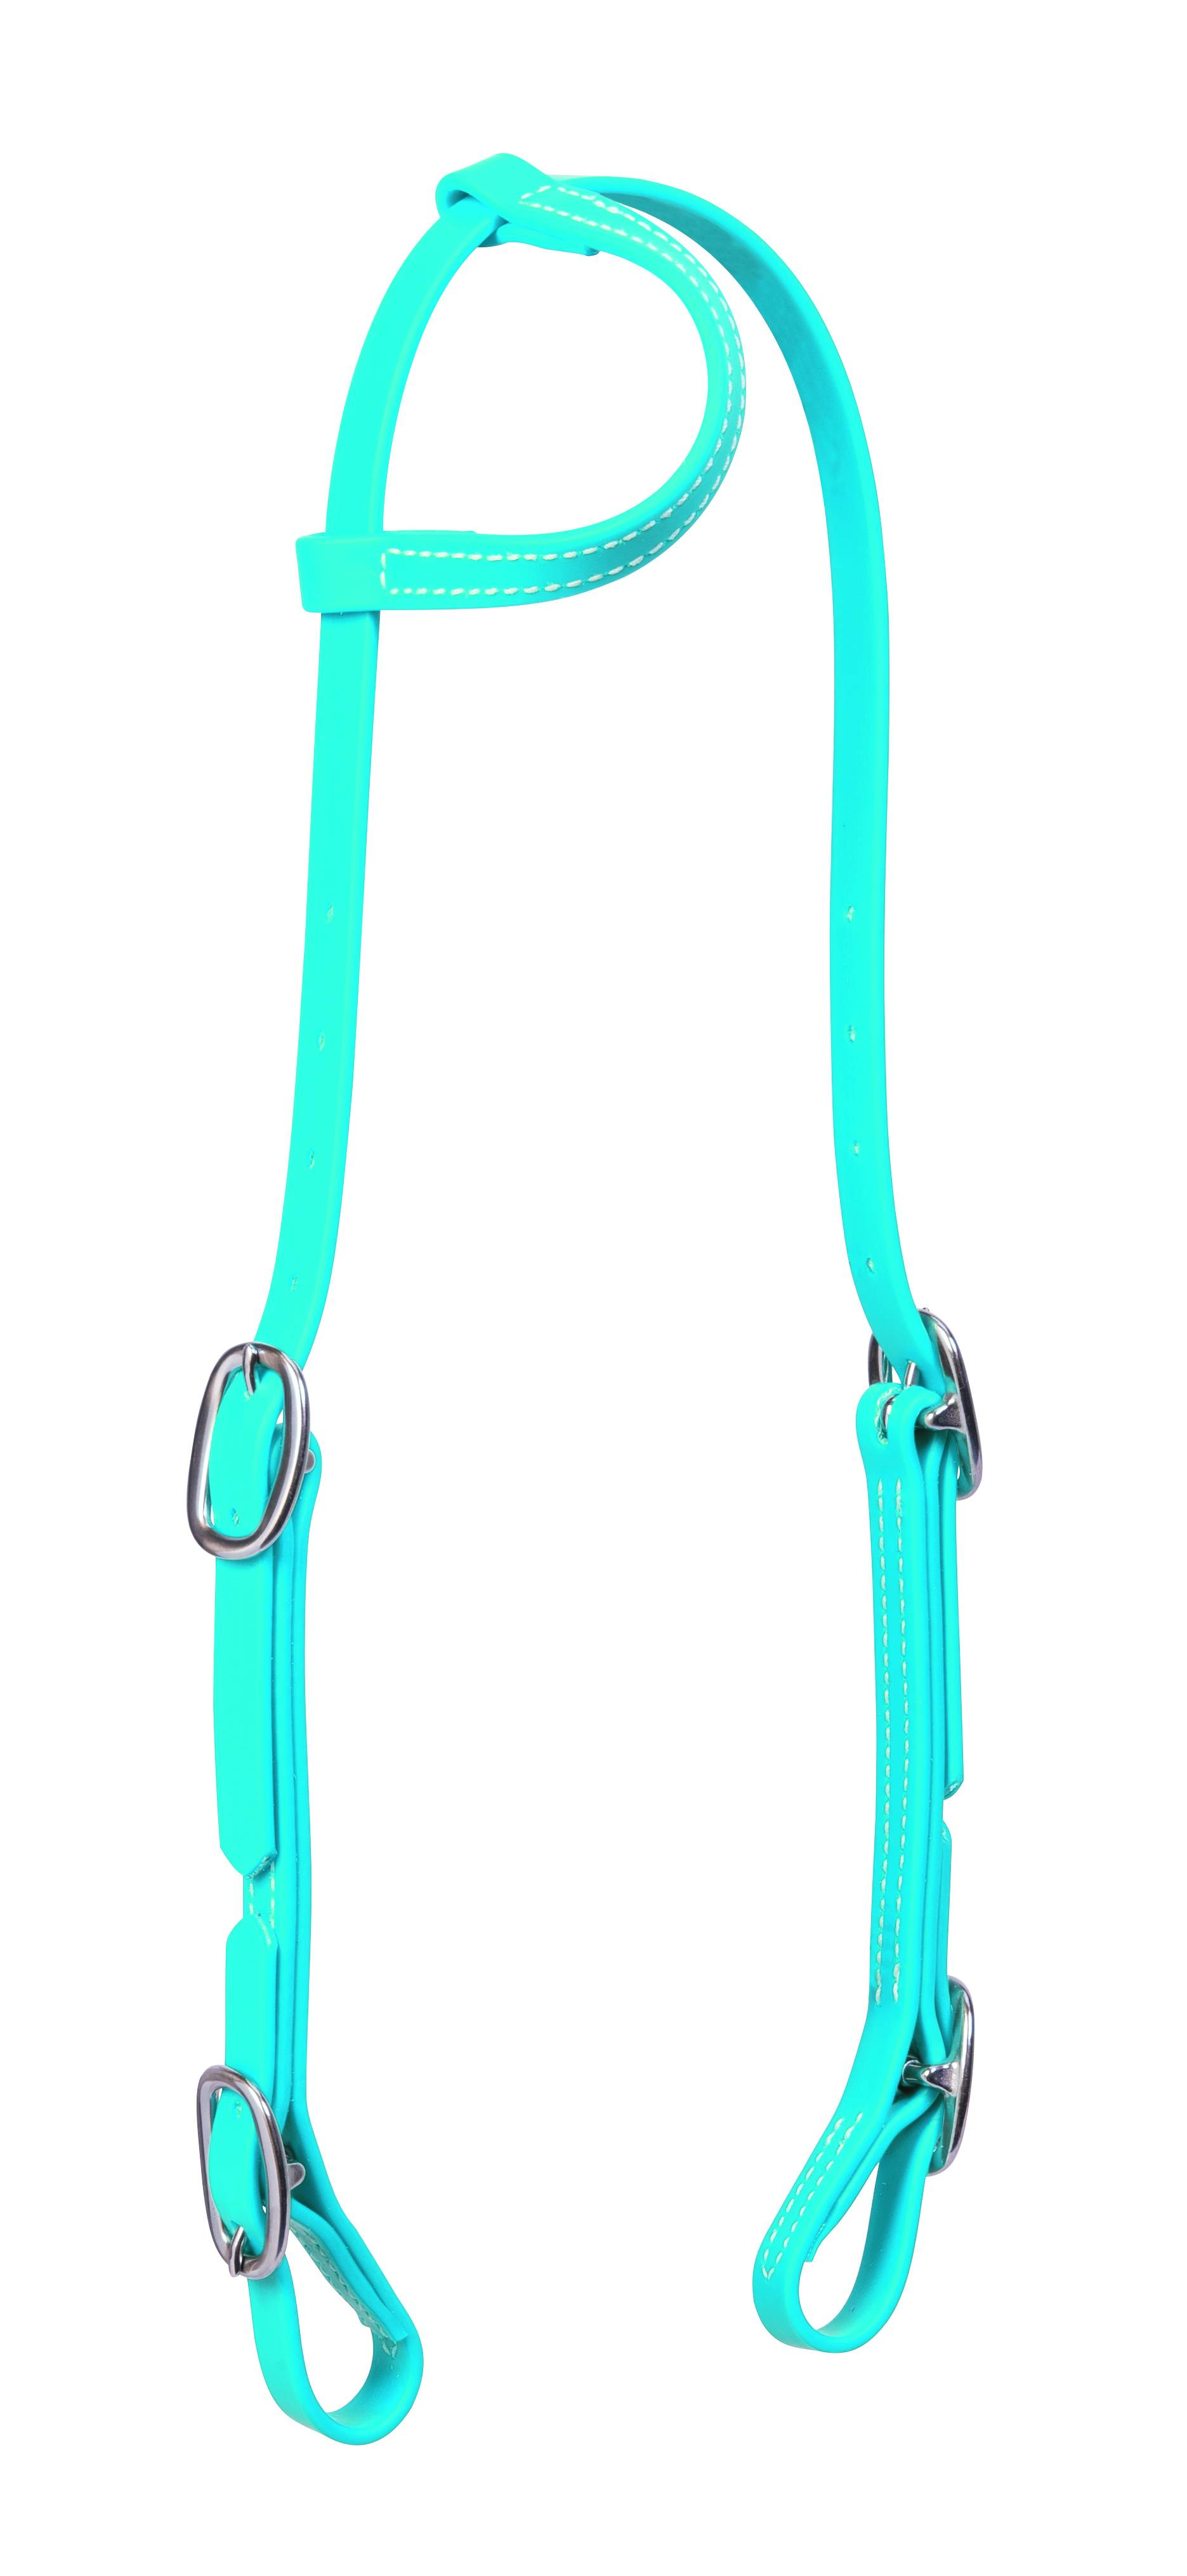 Weaver Brahma Webb Sliding Ear Headstall